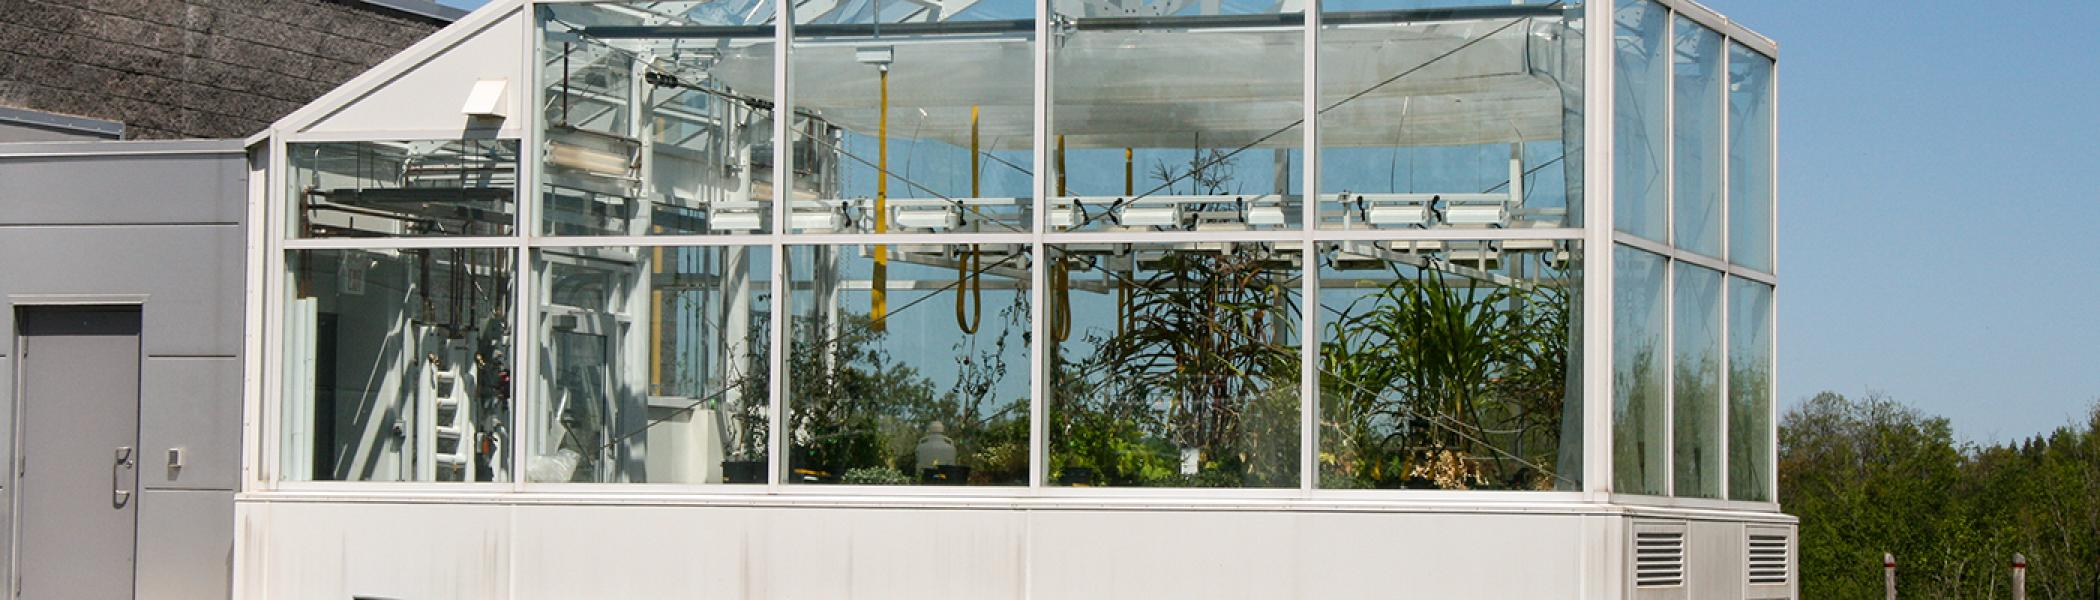 Exterior view of the DNA building greenhouse in the summer sunshine